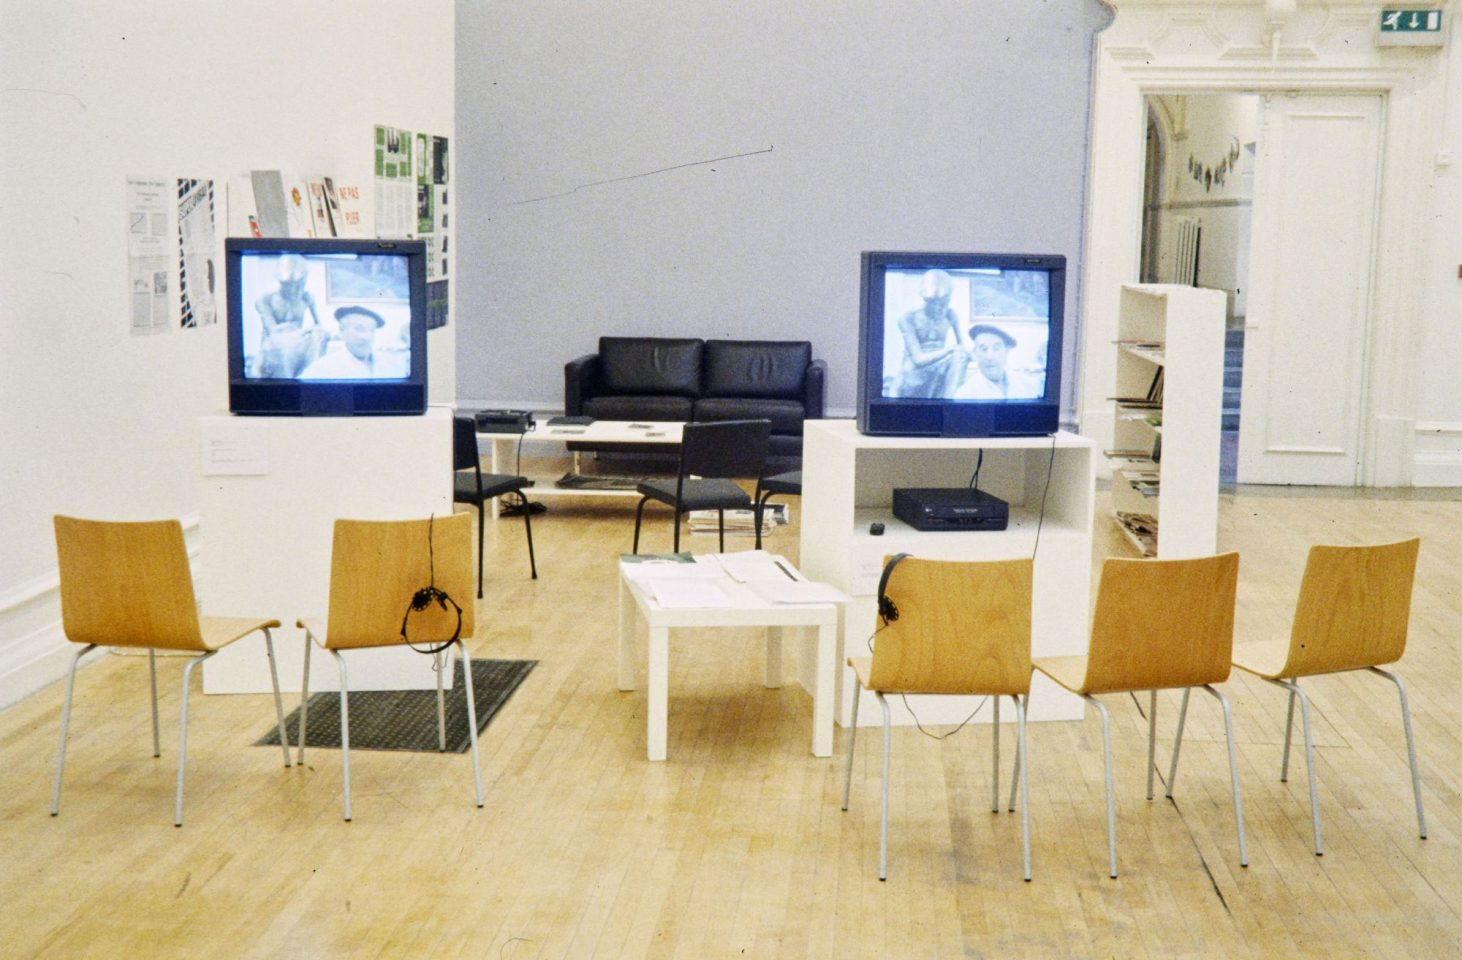 Installation view of 1999 exhibition Non Place Urban Realm.